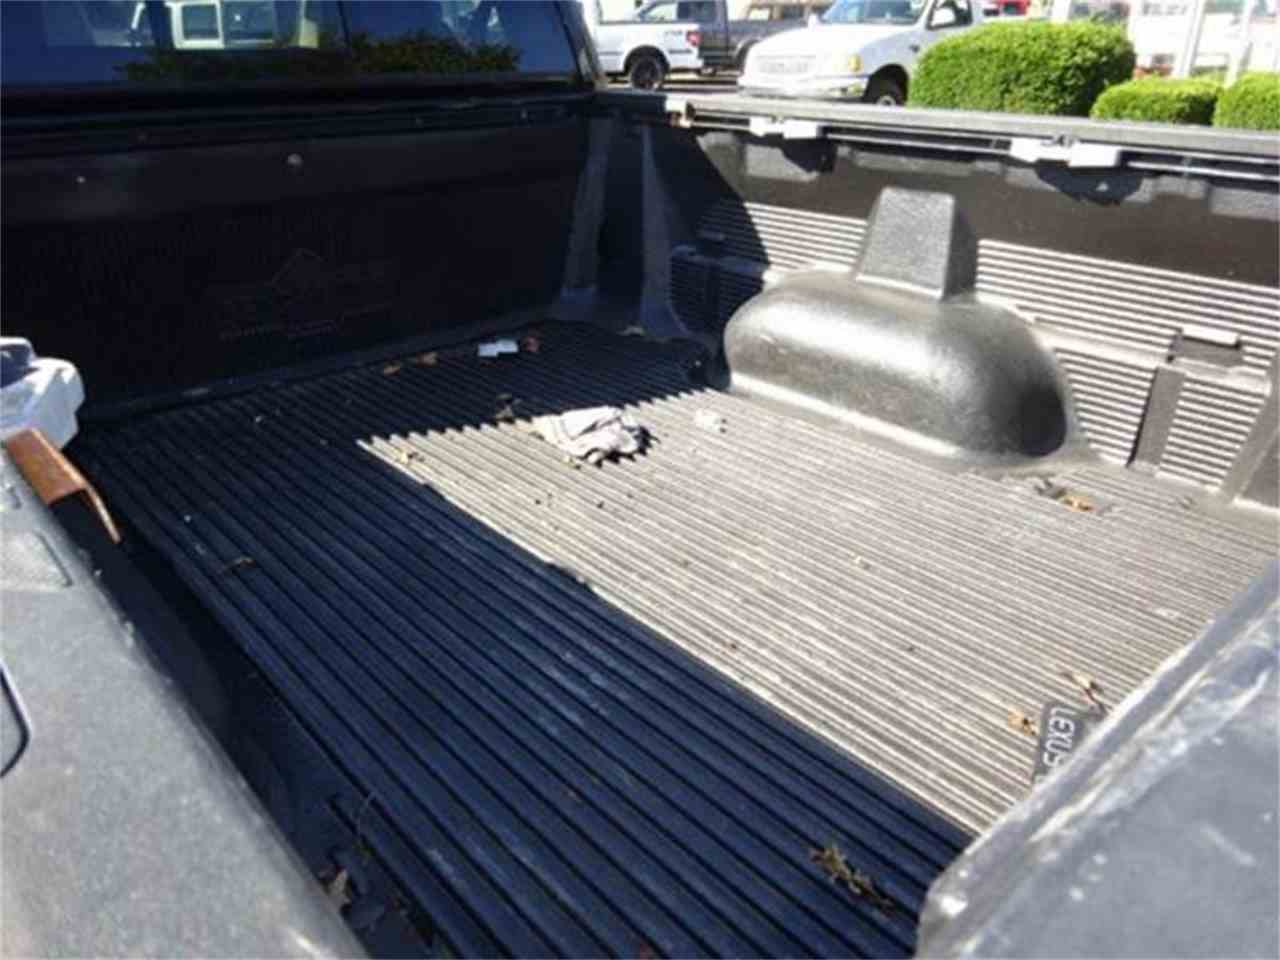 Large Picture of 2008 Toyota Tundra located in Ohio - $11,000.00 - MBKP